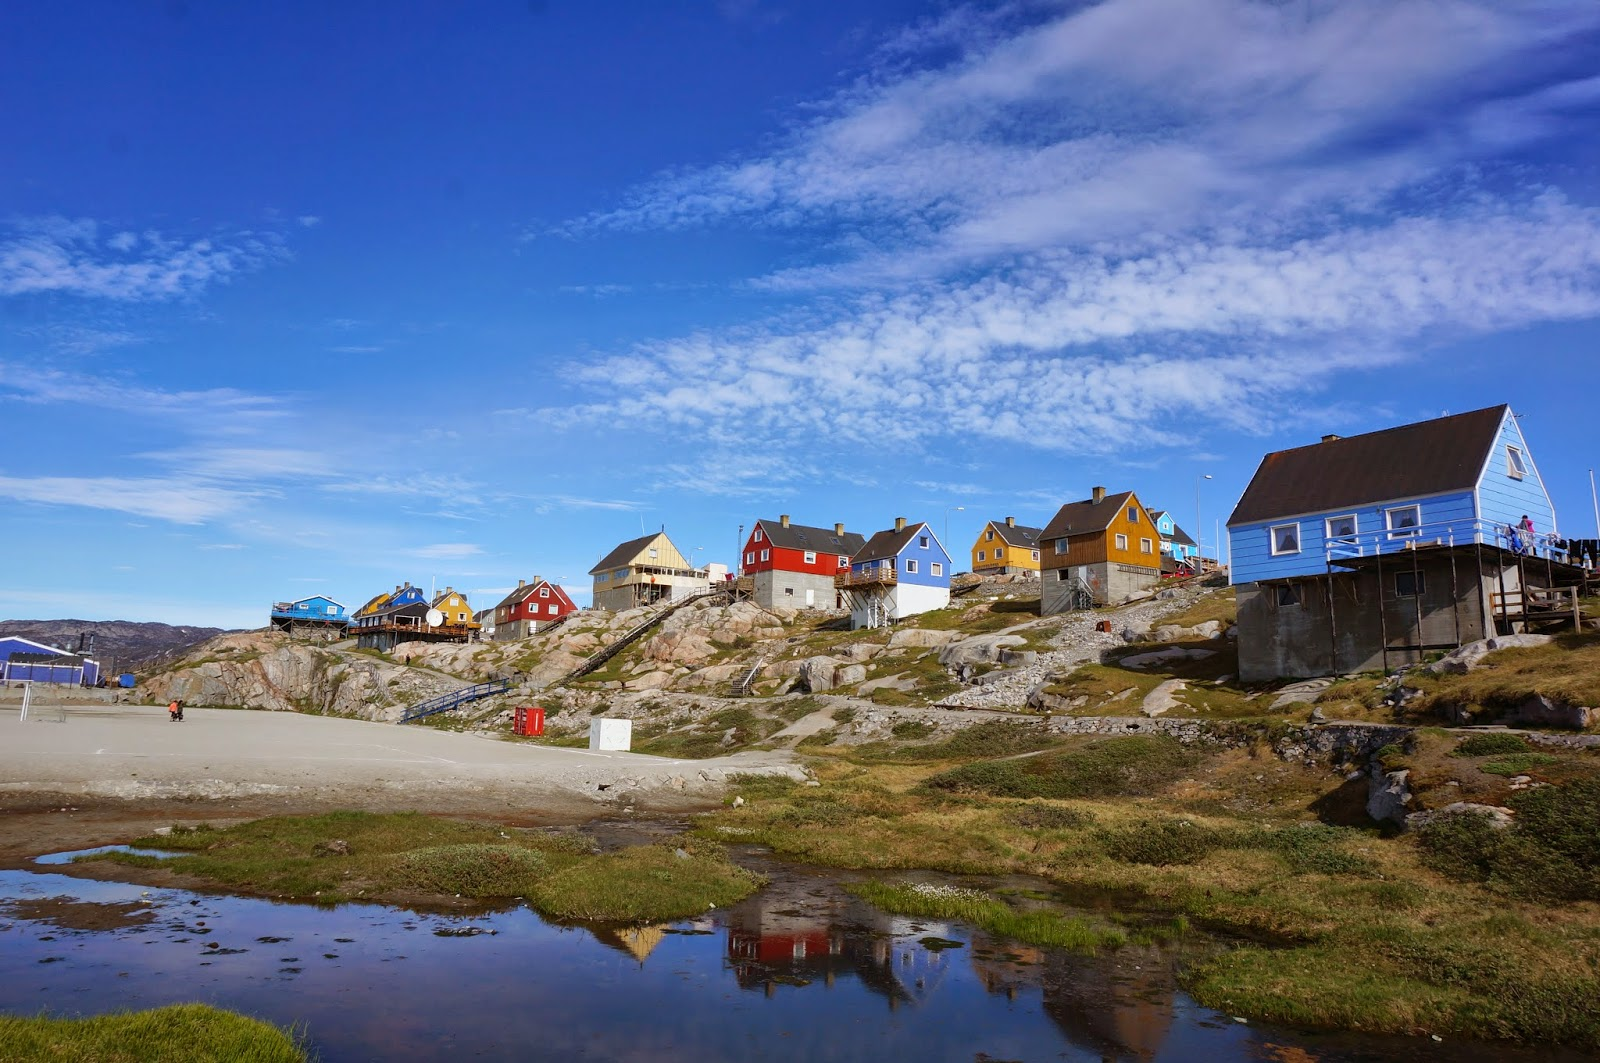 Colourful houses in Ilulissat, western Greenland - gluten-free travellers should make their way here for icebergs, sailing and delicious seafood